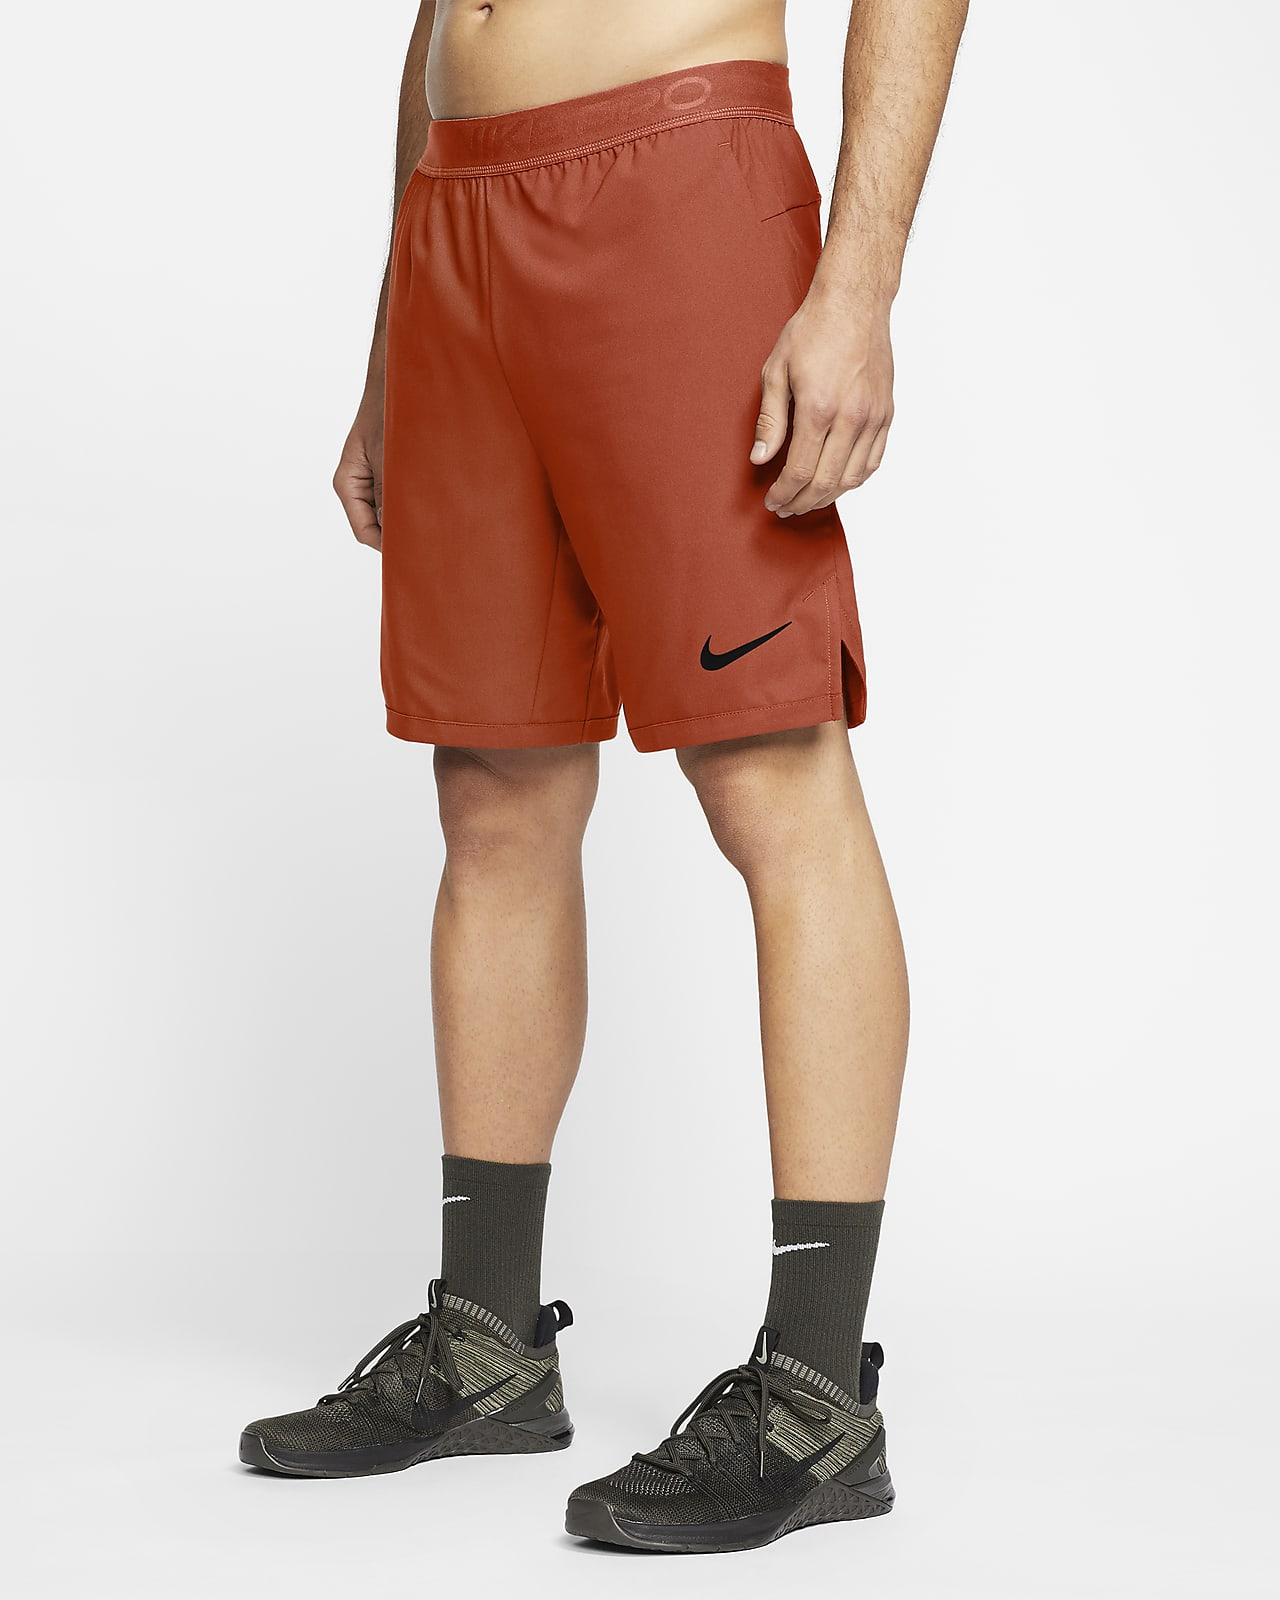 Nike Pro Flex Vent Max Men's Shorts